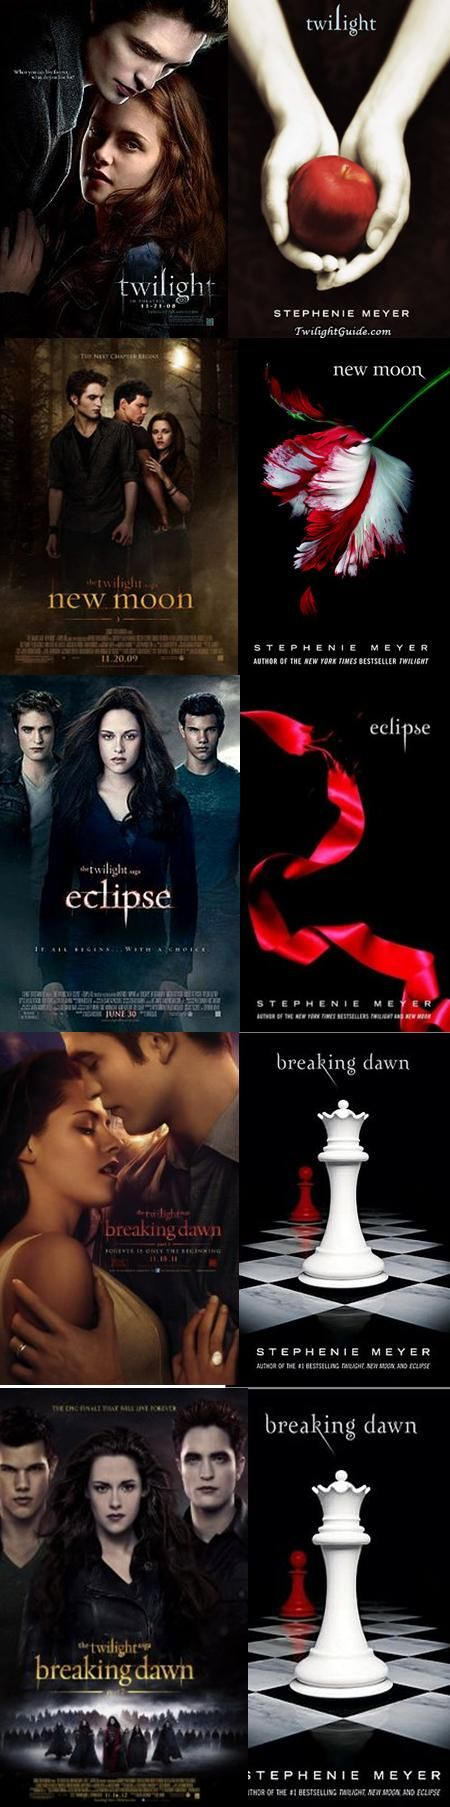 The twilight saga was a series of books I purposefully saved pennies to buy and read! I was a teen mom when they came out, barely getting by, these books gave me a temporary reprieve from the life I was in!